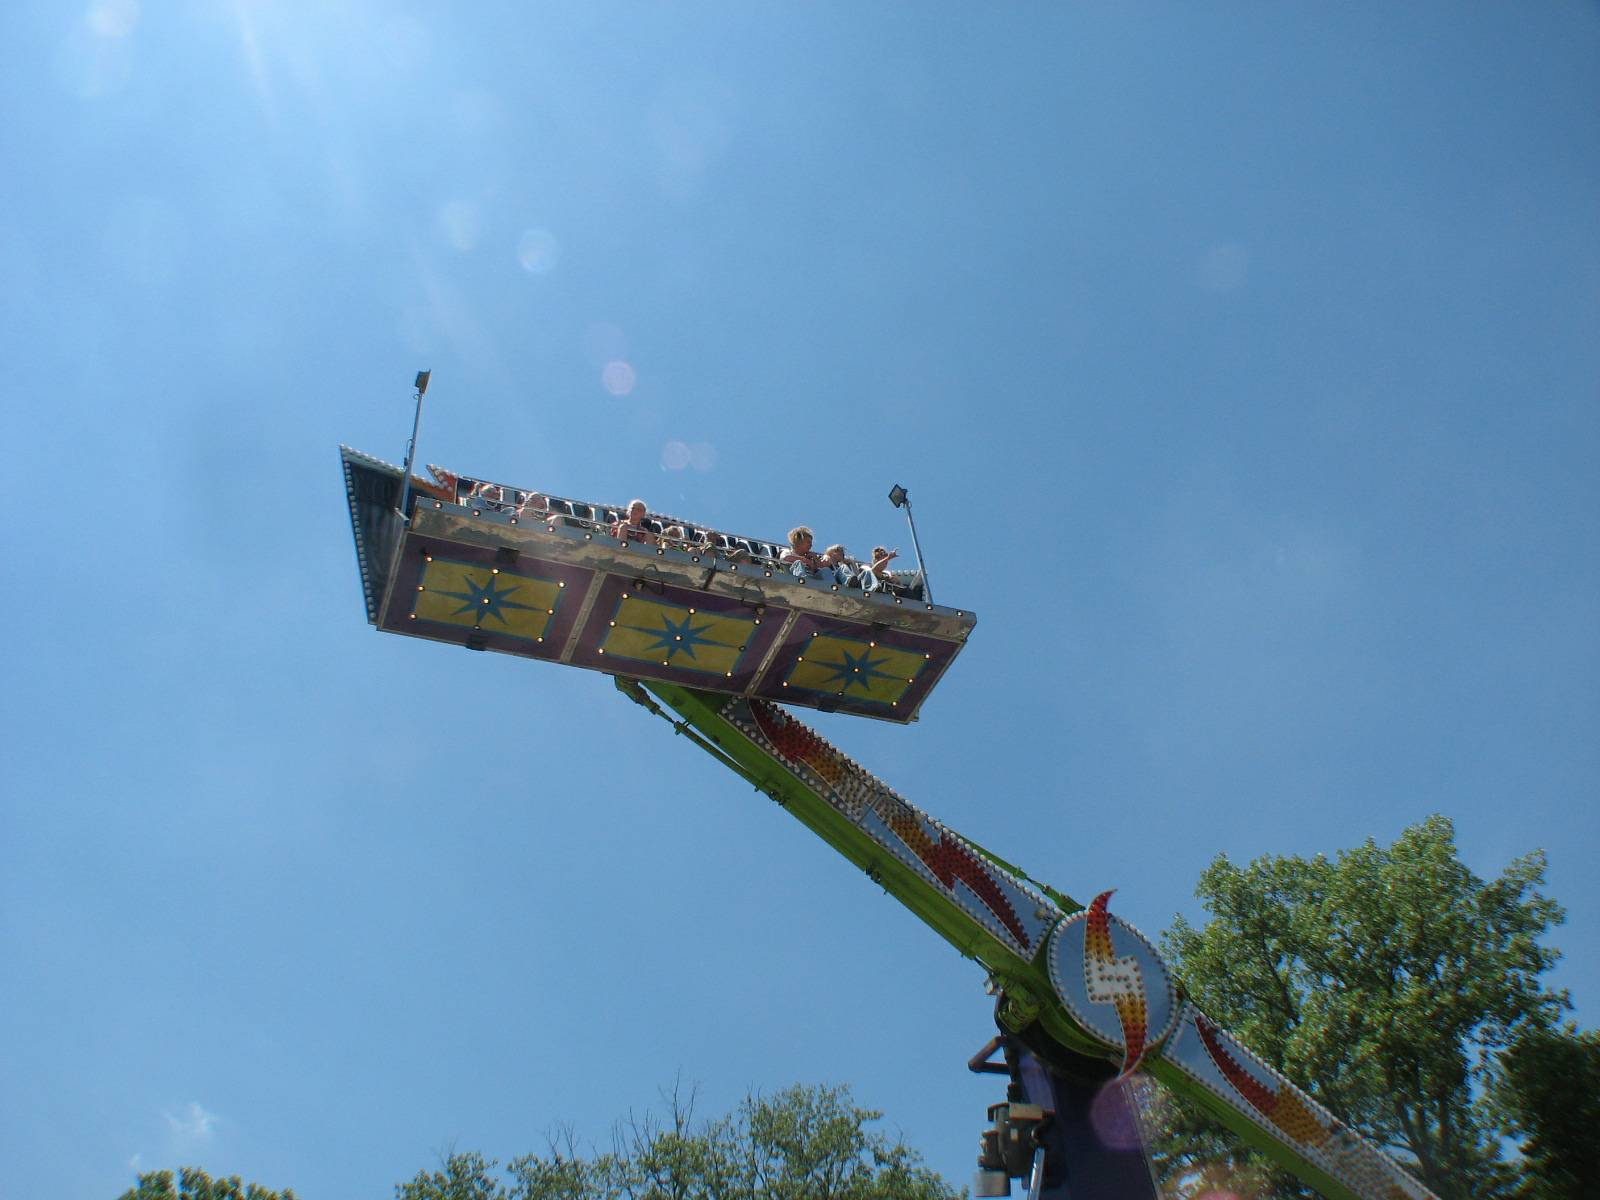 Getting a high view of the festival.